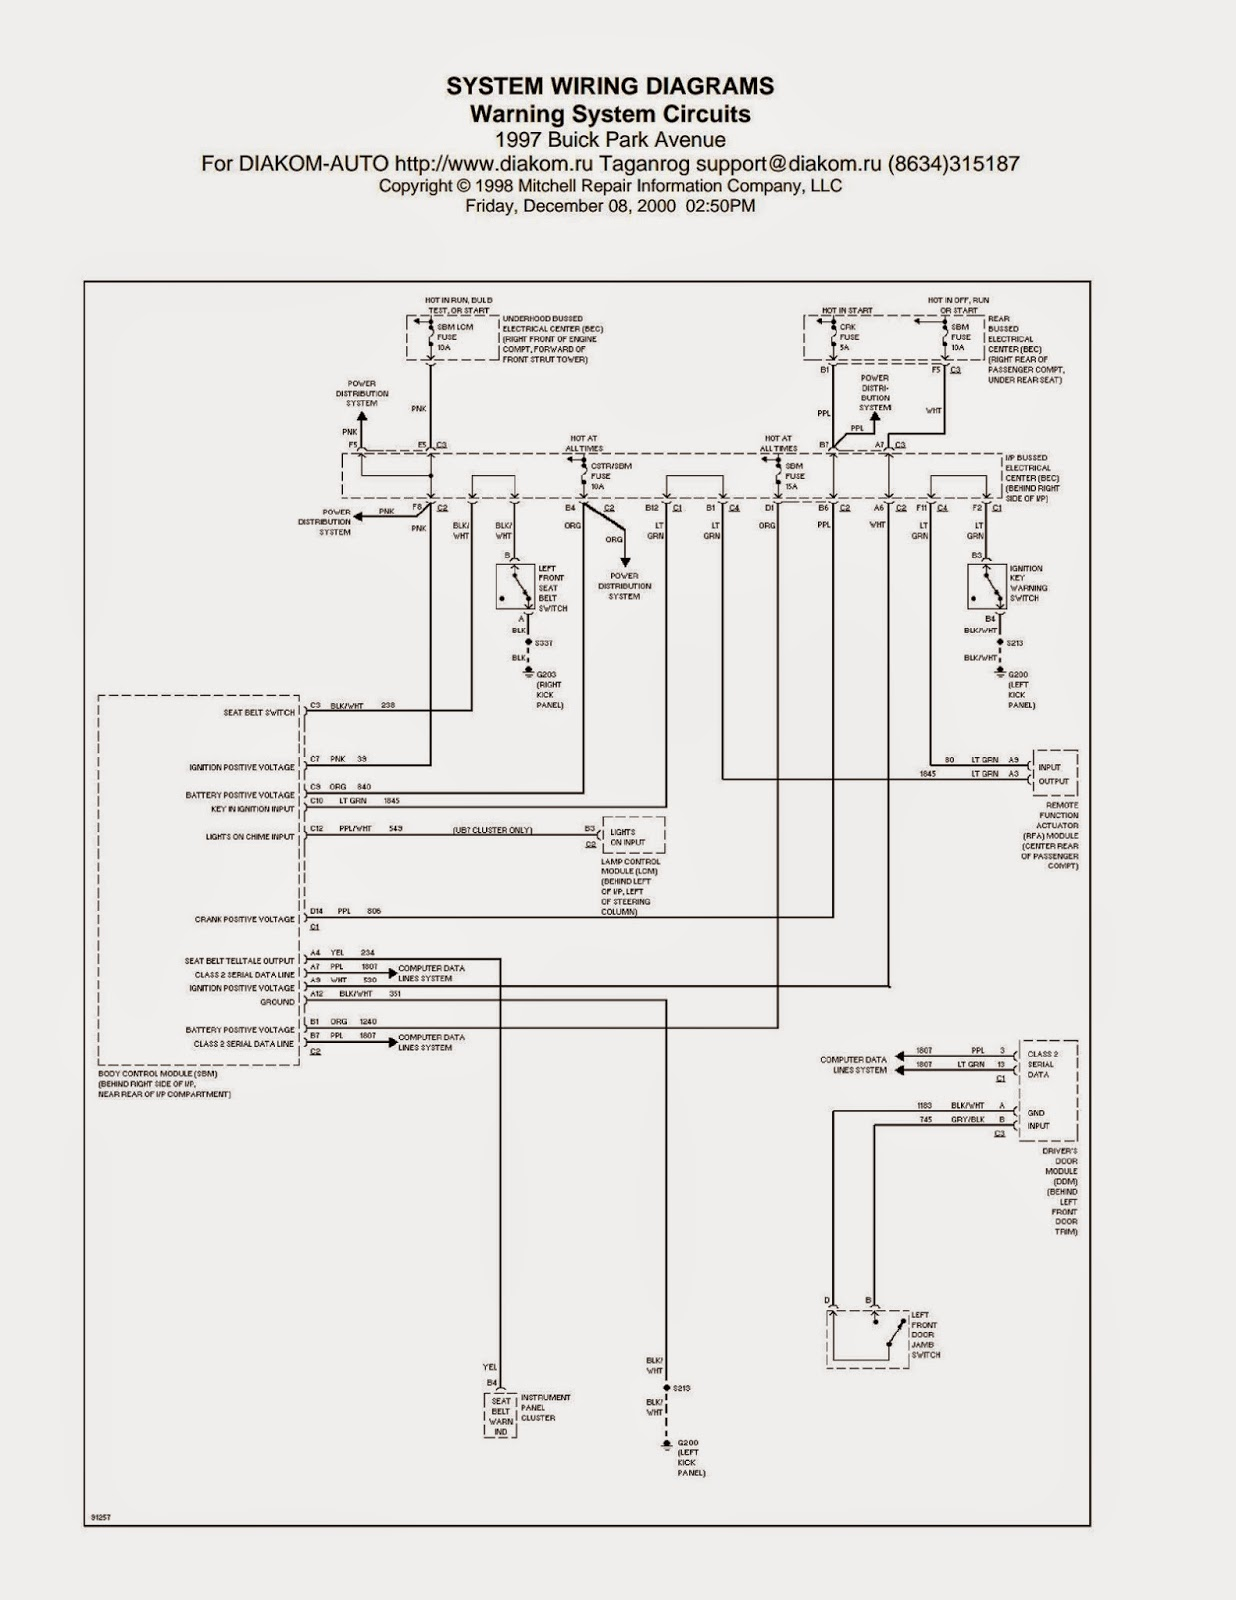 99 Park Avenue Wiring Diagram - Dodge Hemi Wiring Harness for Wiring  Diagram Schematics | 99 Park Avenue Wiring Diagram Interior |  | Wiring Diagram Schematics